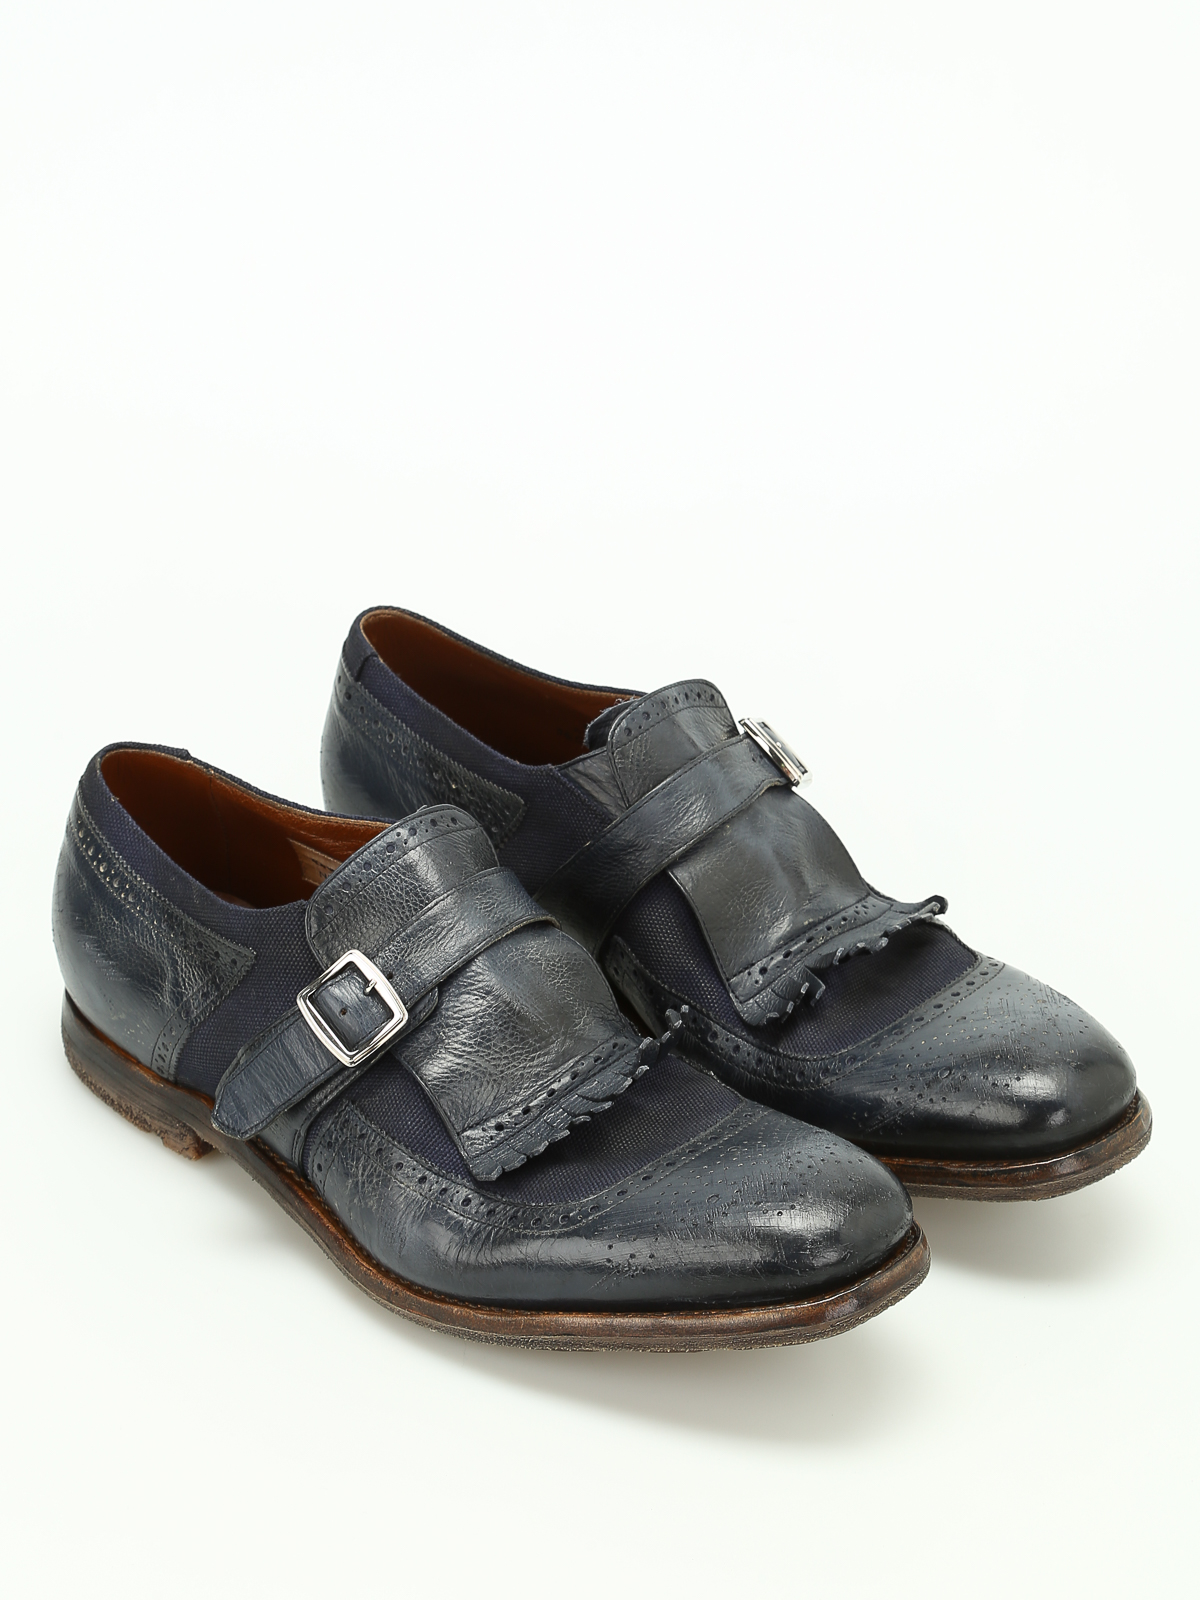 d0bc54f4e30 Church s - Shanghai used leather monk straps - Loafers   Slippers ...